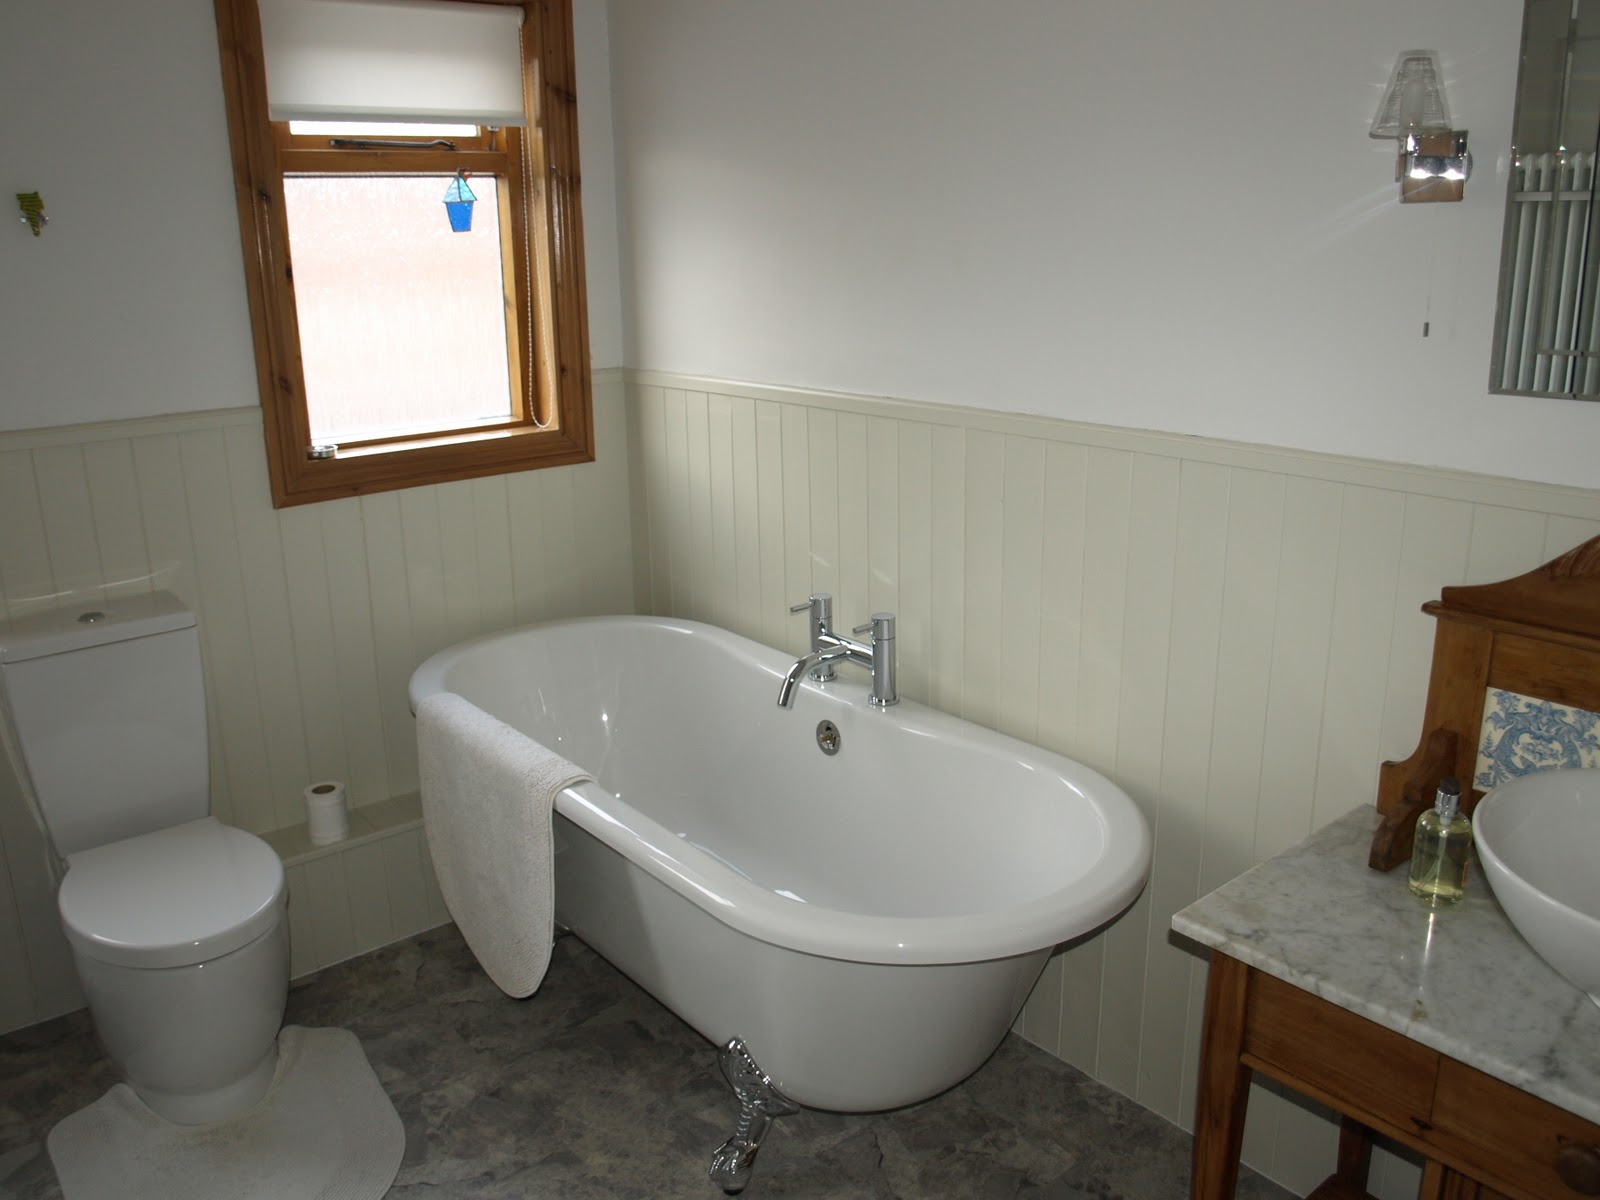 Diary Of A Bathroom Refit Where Did THAT Come From - Bathroom refit